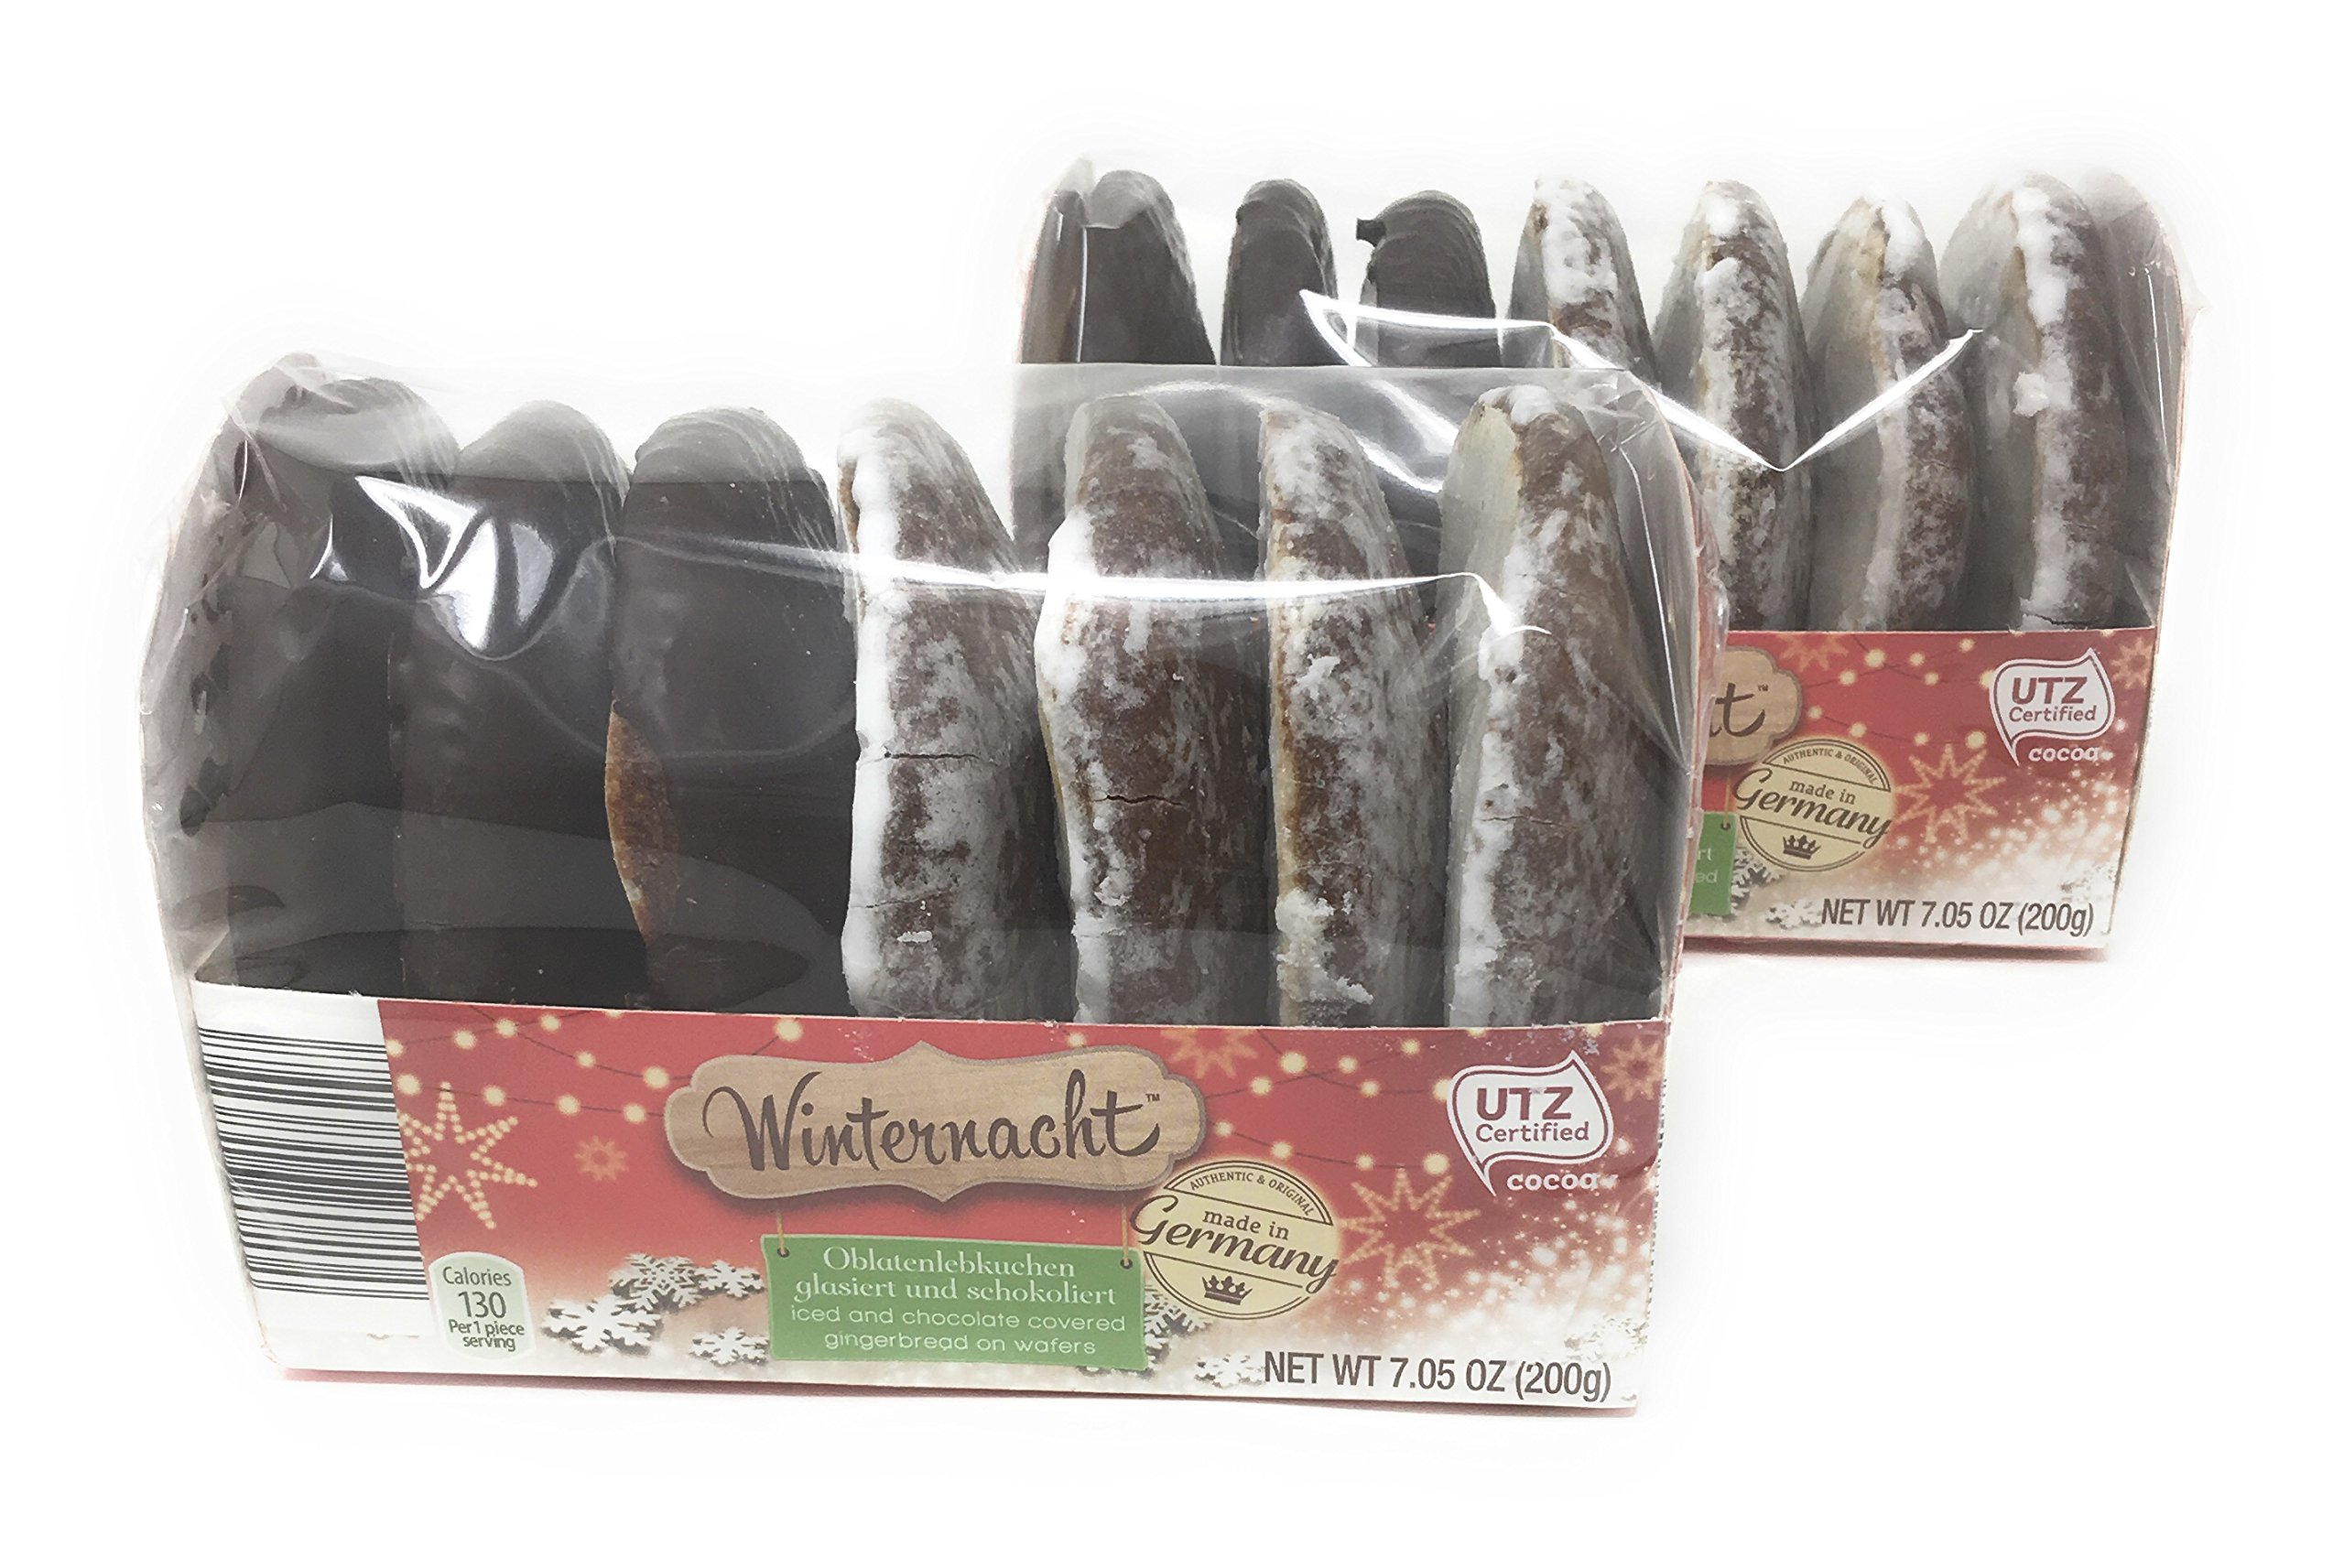 Winternacht Lebkuchen German Iced and Chocolate Covered Gingerbread Cookies on Wafers 200 grams (pack of 2)